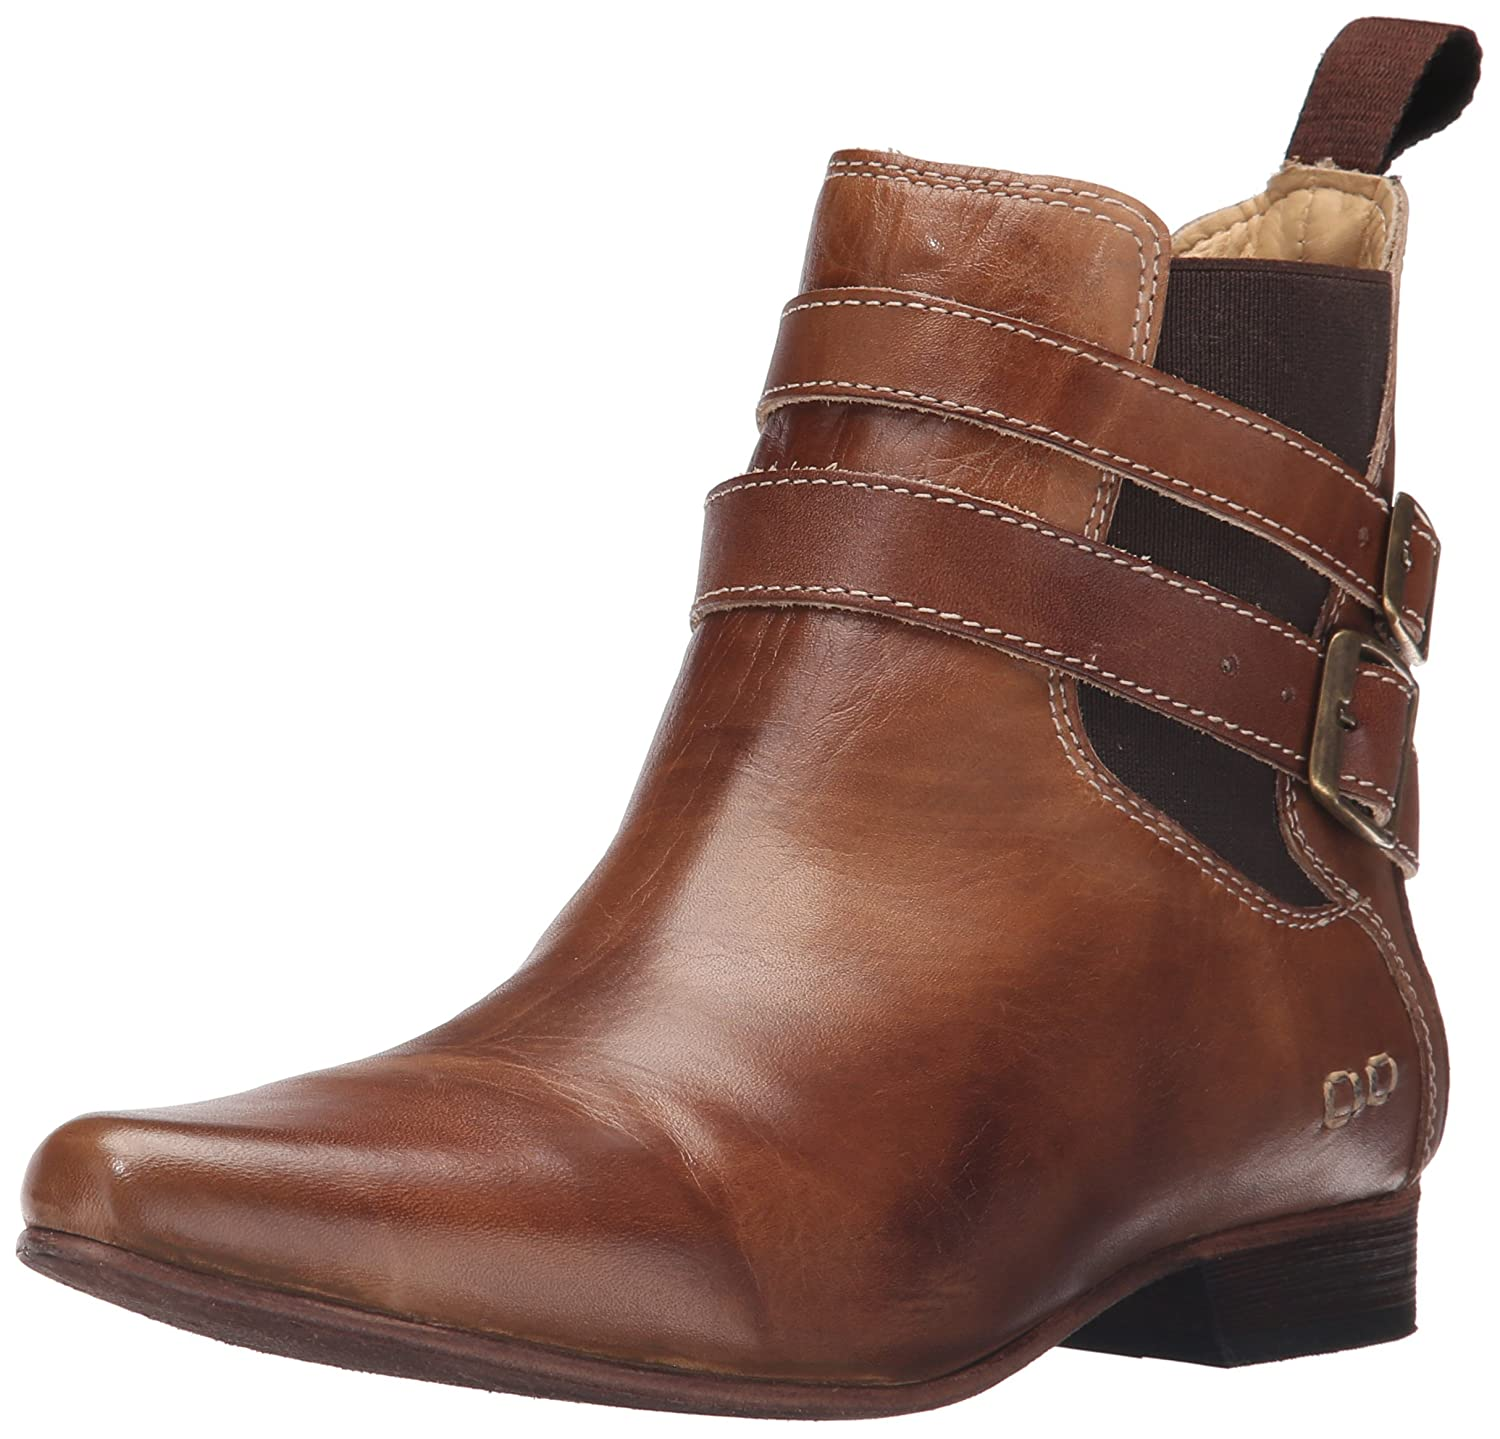 bed stu Women's Ravine Boot